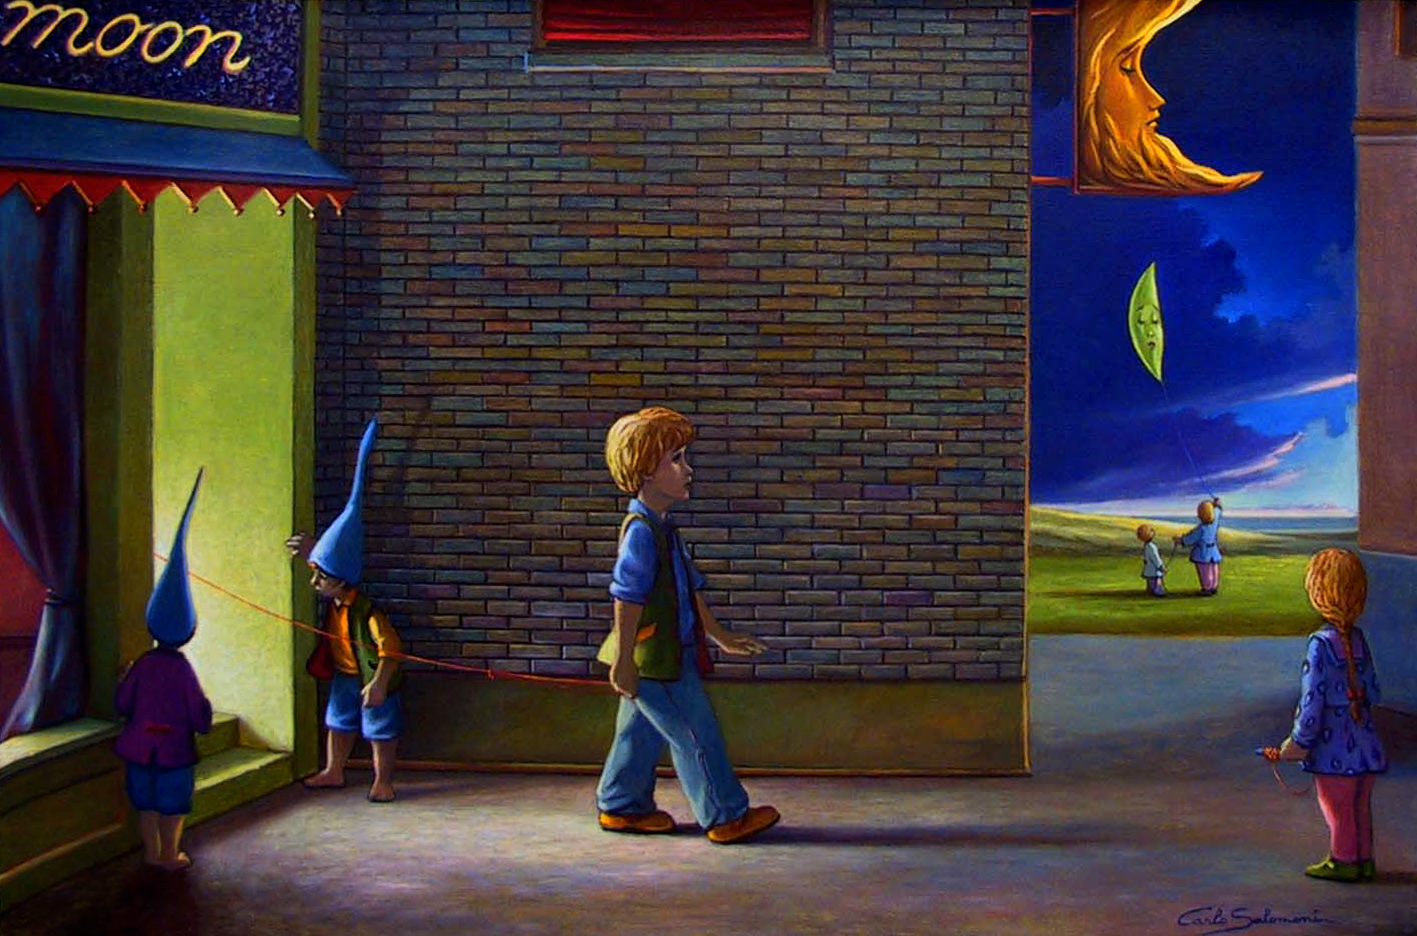 Store of the moon - 24x36 inches- olio su tela.